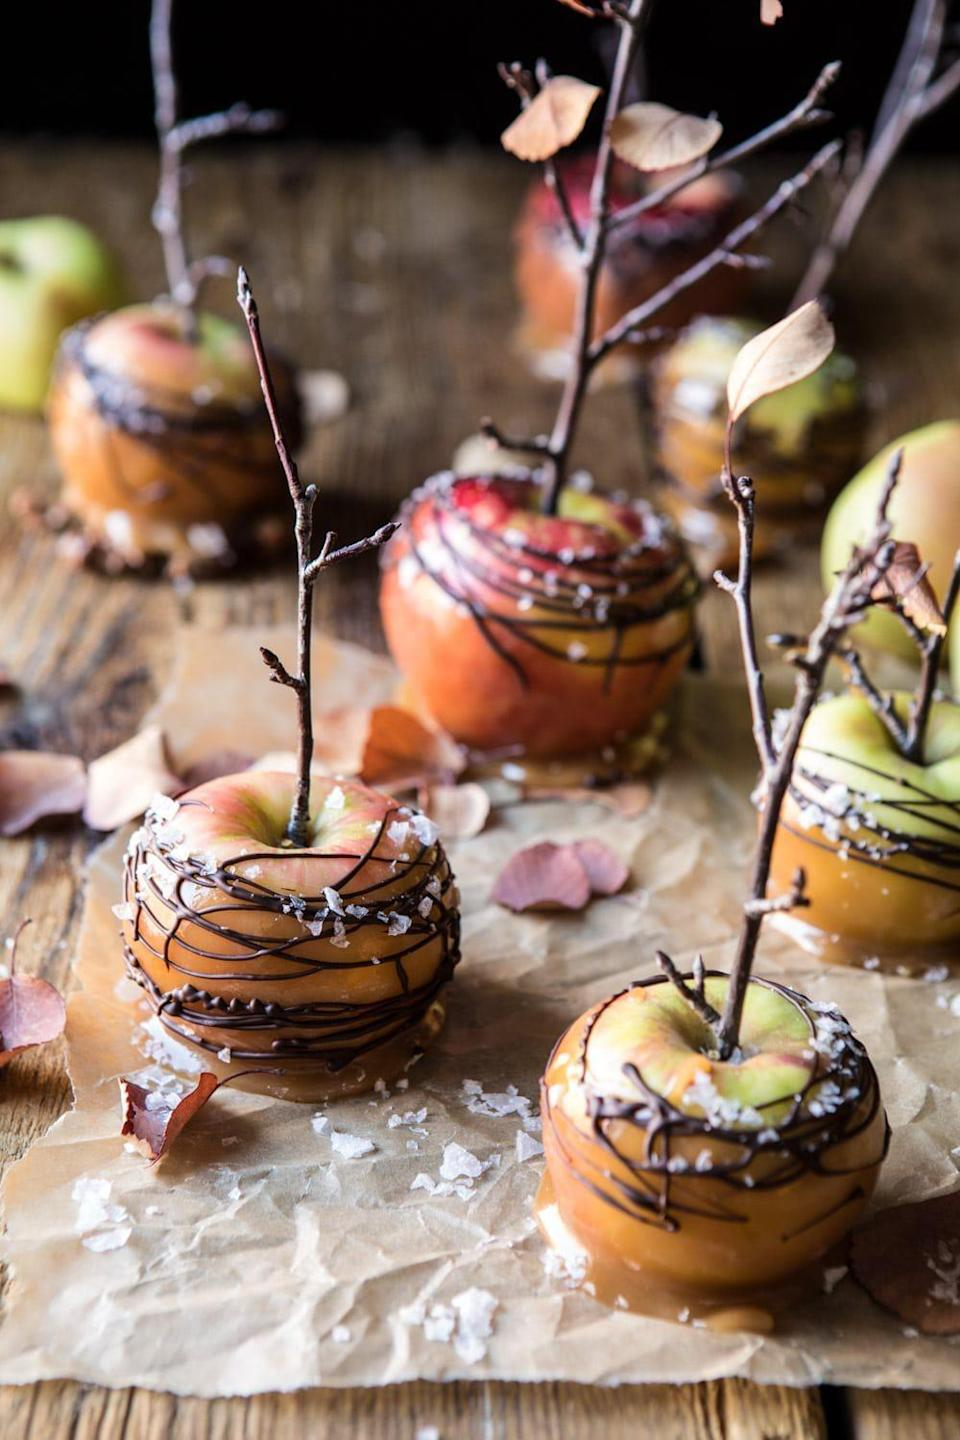 "<p>Want to serve an app that will steal the show? These festive caramel apples can be slices into bite-size bits or served as full apples. Complete with apple cider, honey, and bourbon, everyone will forget about the main course after they indulge in these.</p> <p><strong>Get the recipe:</strong> <a href=""https://www.halfbakedharvest.com/caramel-apples/"" class=""link rapid-noclick-resp"" rel=""nofollow noopener"" target=""_blank"" data-ylk=""slk:sweet and salty chocolate-drizzled cider caramel apples"">sweet and salty chocolate-drizzled cider caramel apples</a></p>"